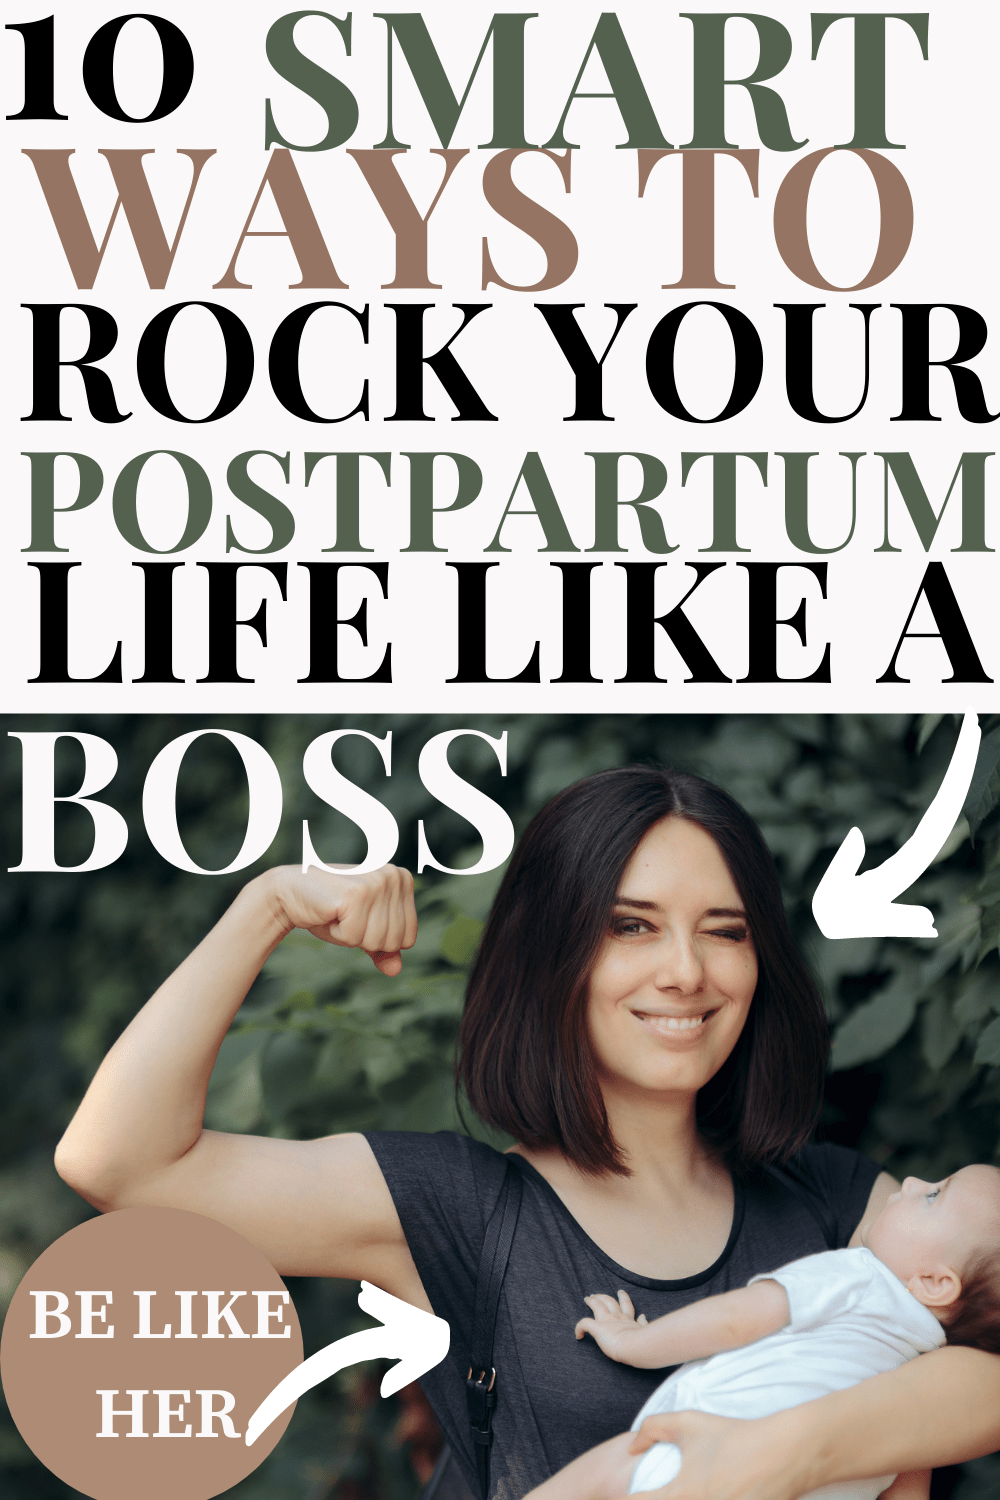 10 excellent ways to Rock and enjoy your postpartum life